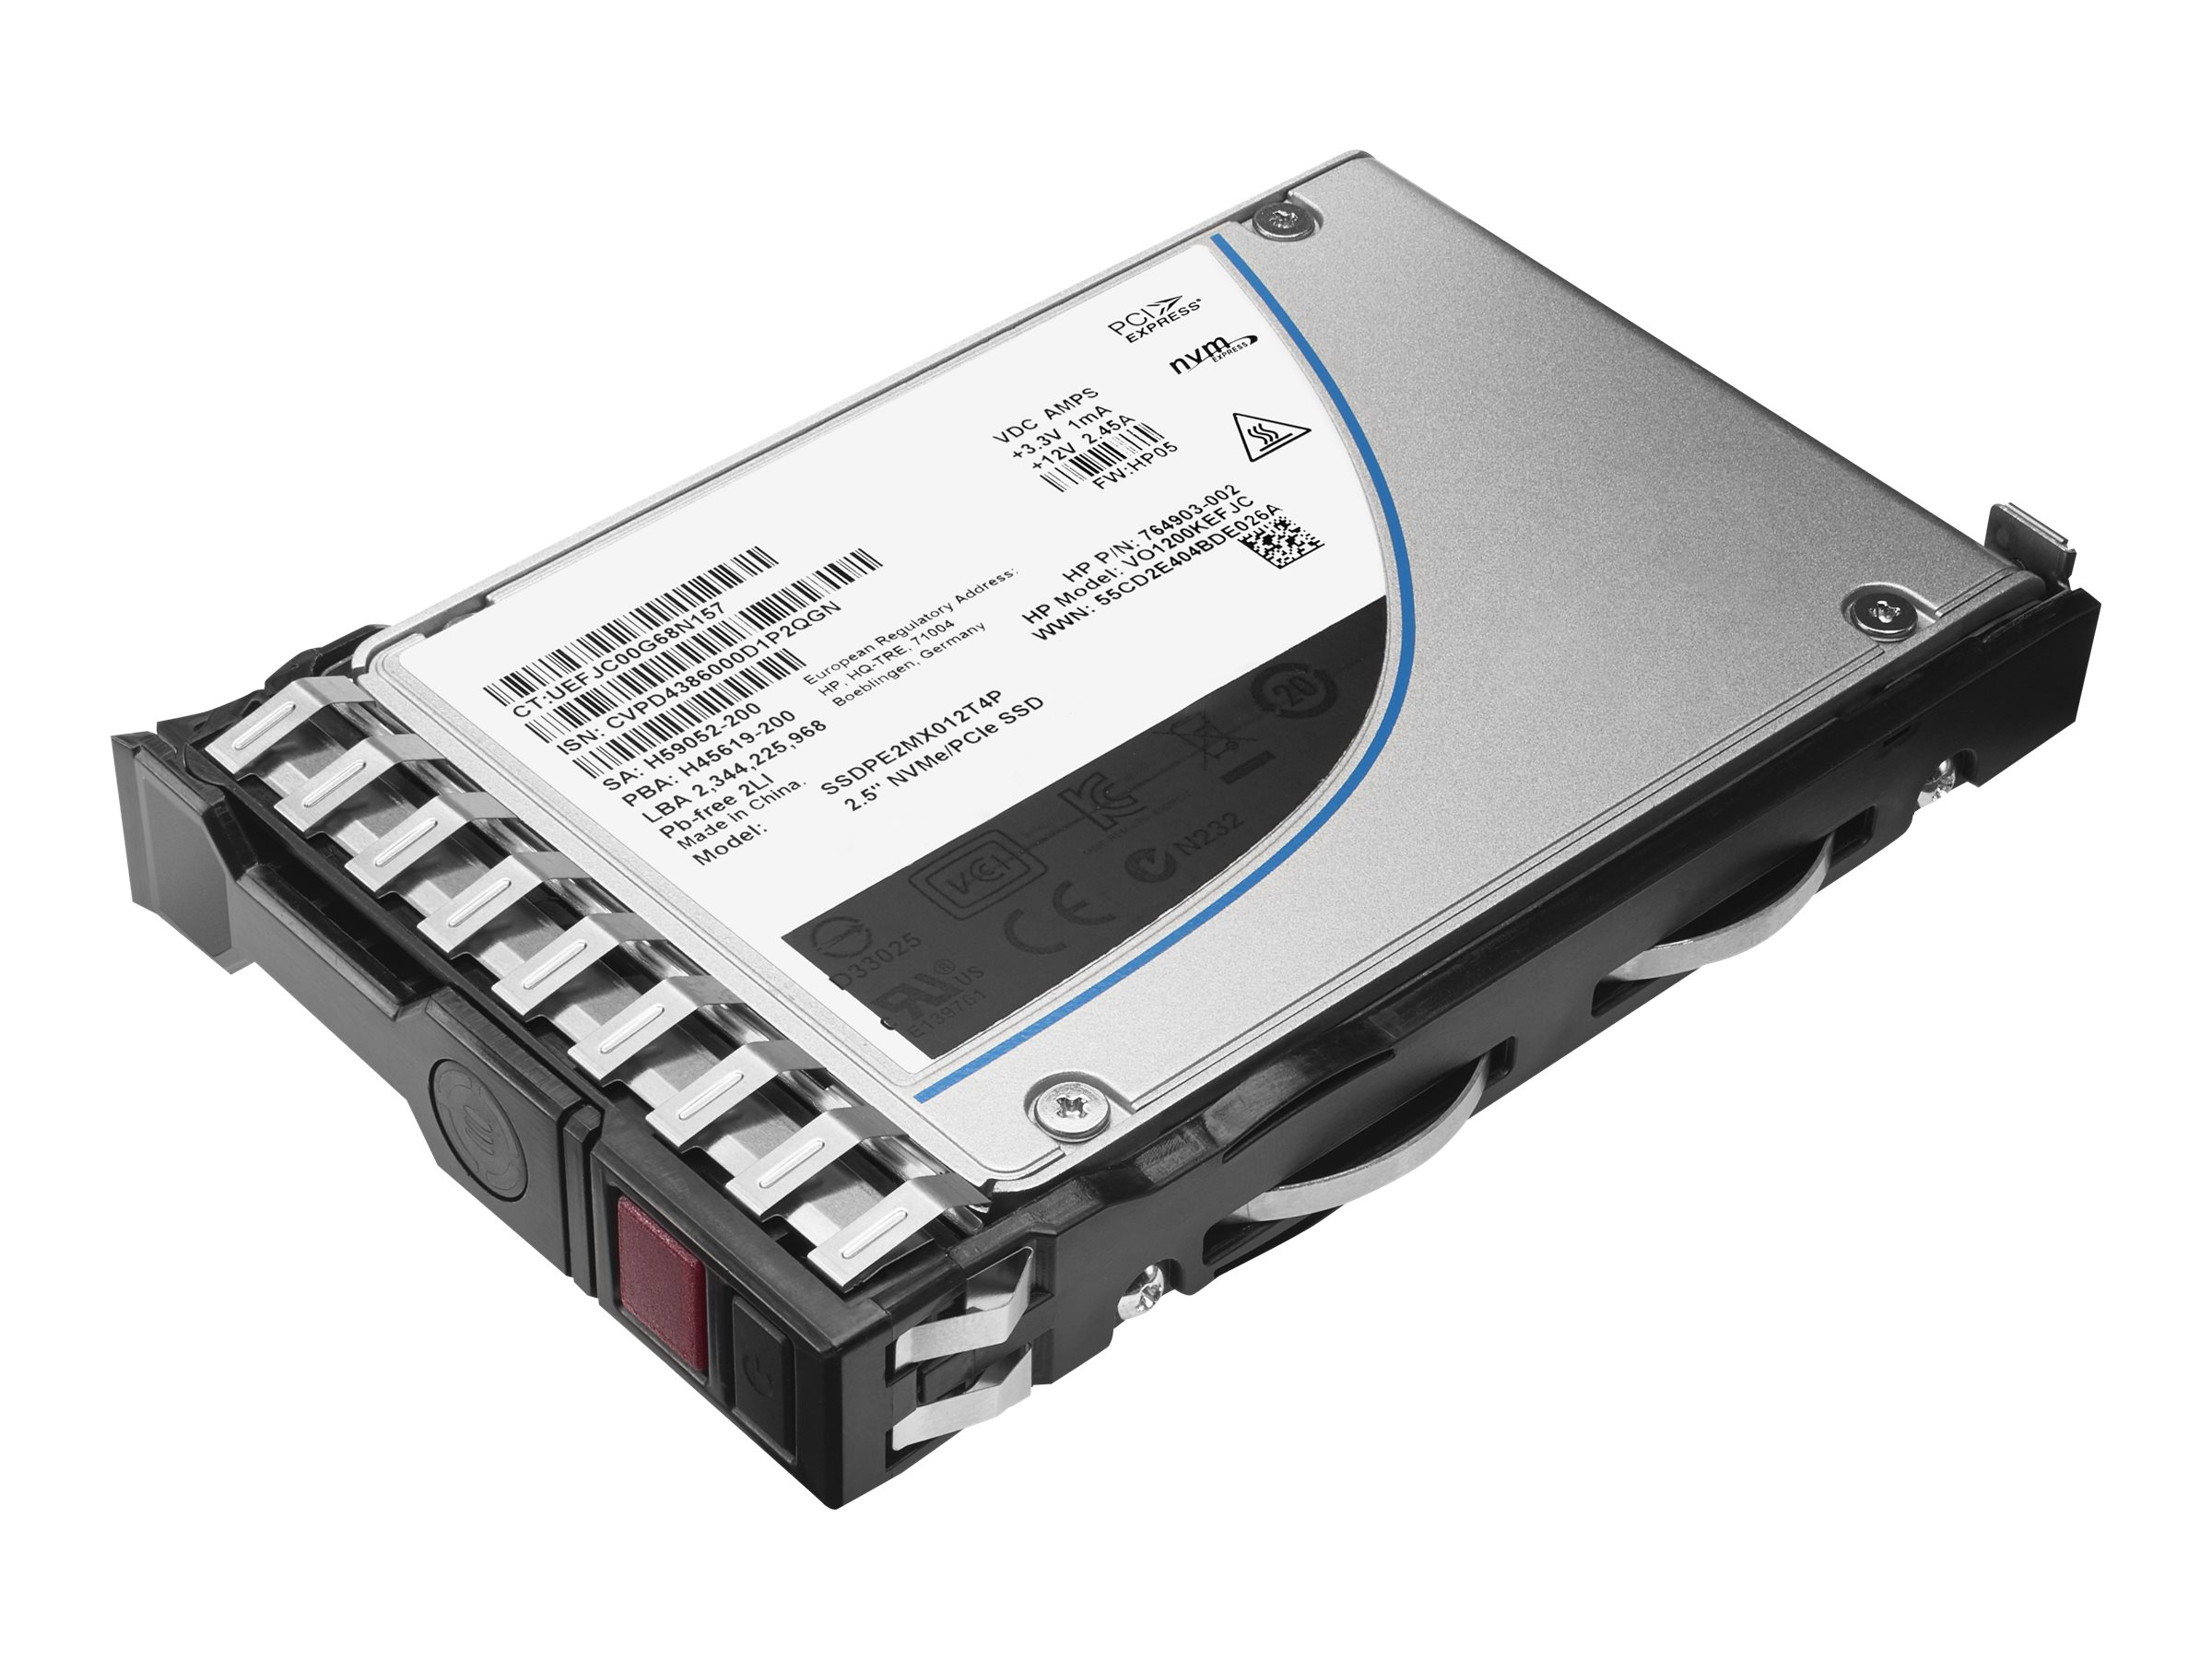 HPE 960GB SATA 6Gb s Mixed Use-3 SFF 2.5 Smart Carrier Solid State Drive, 816995-B21